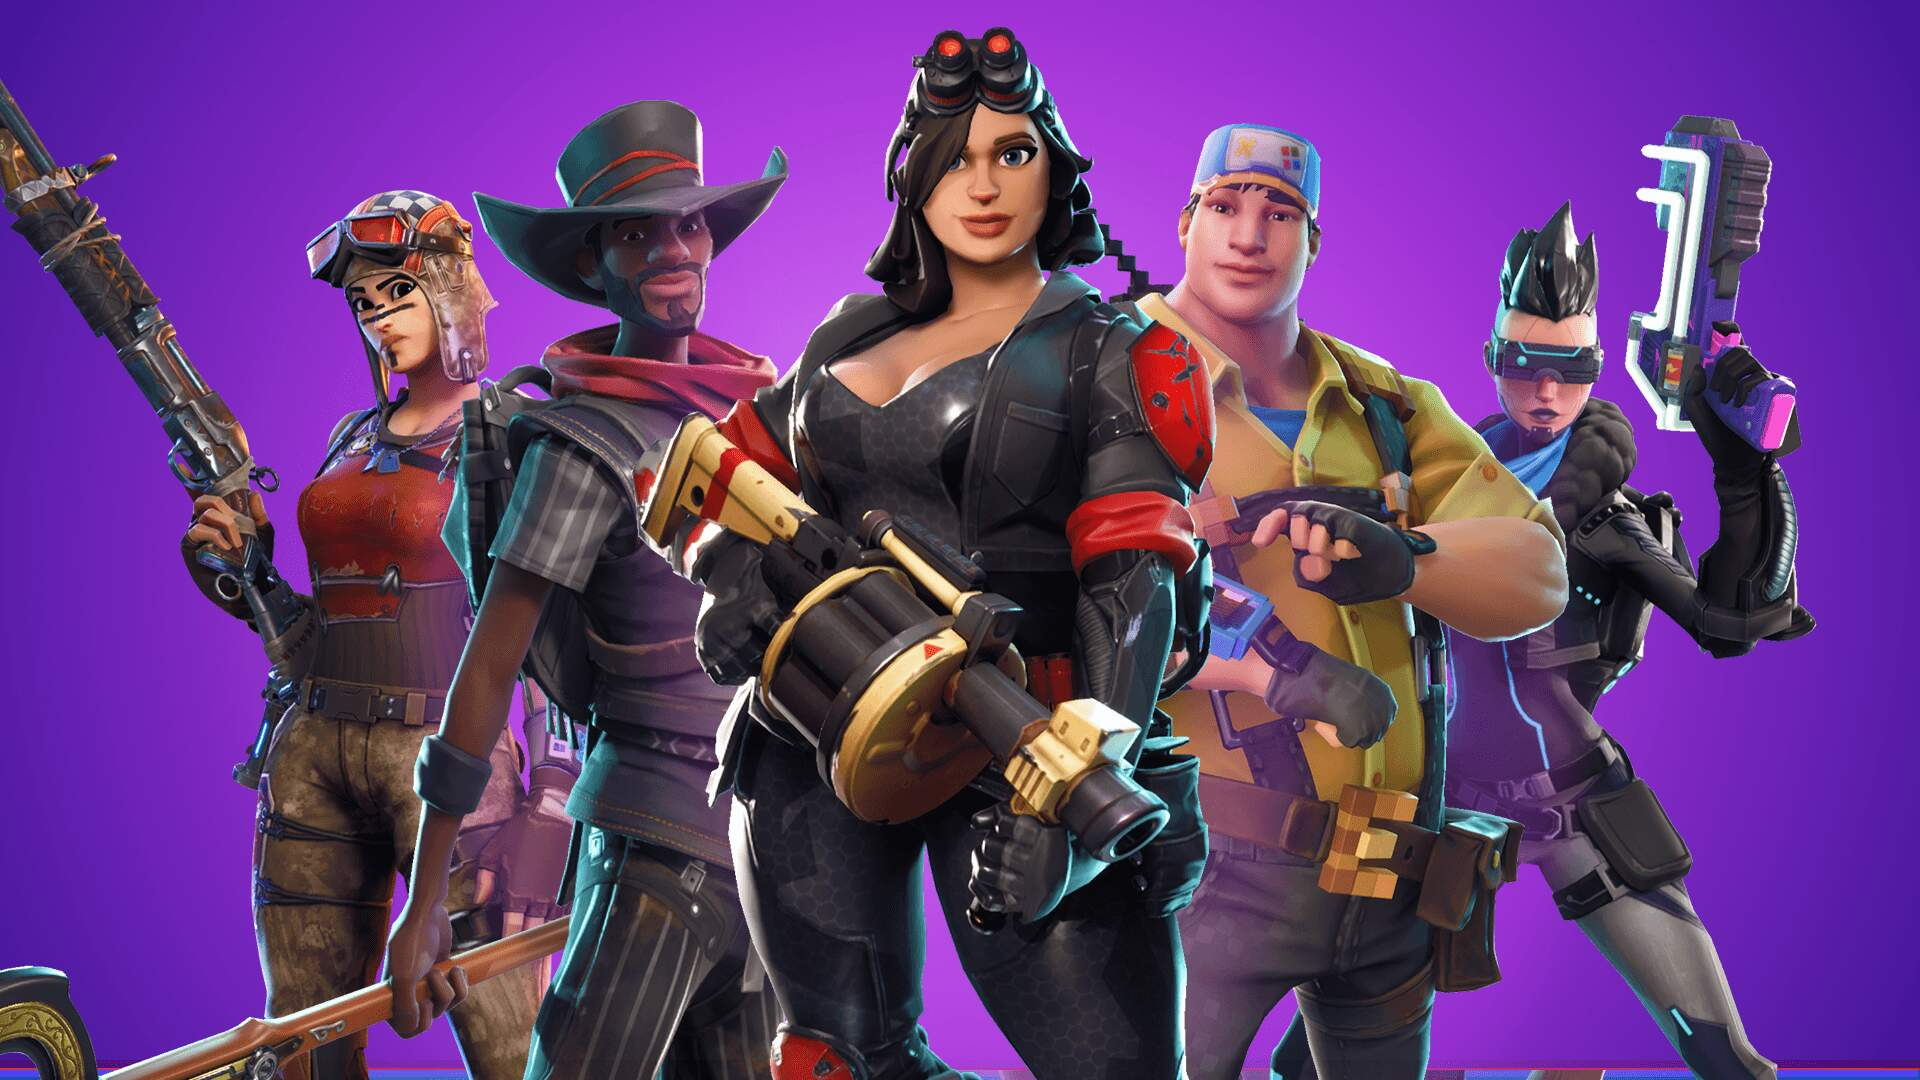 Fortnite Players Wish They Could Take Pricey Skins for a Test Drive